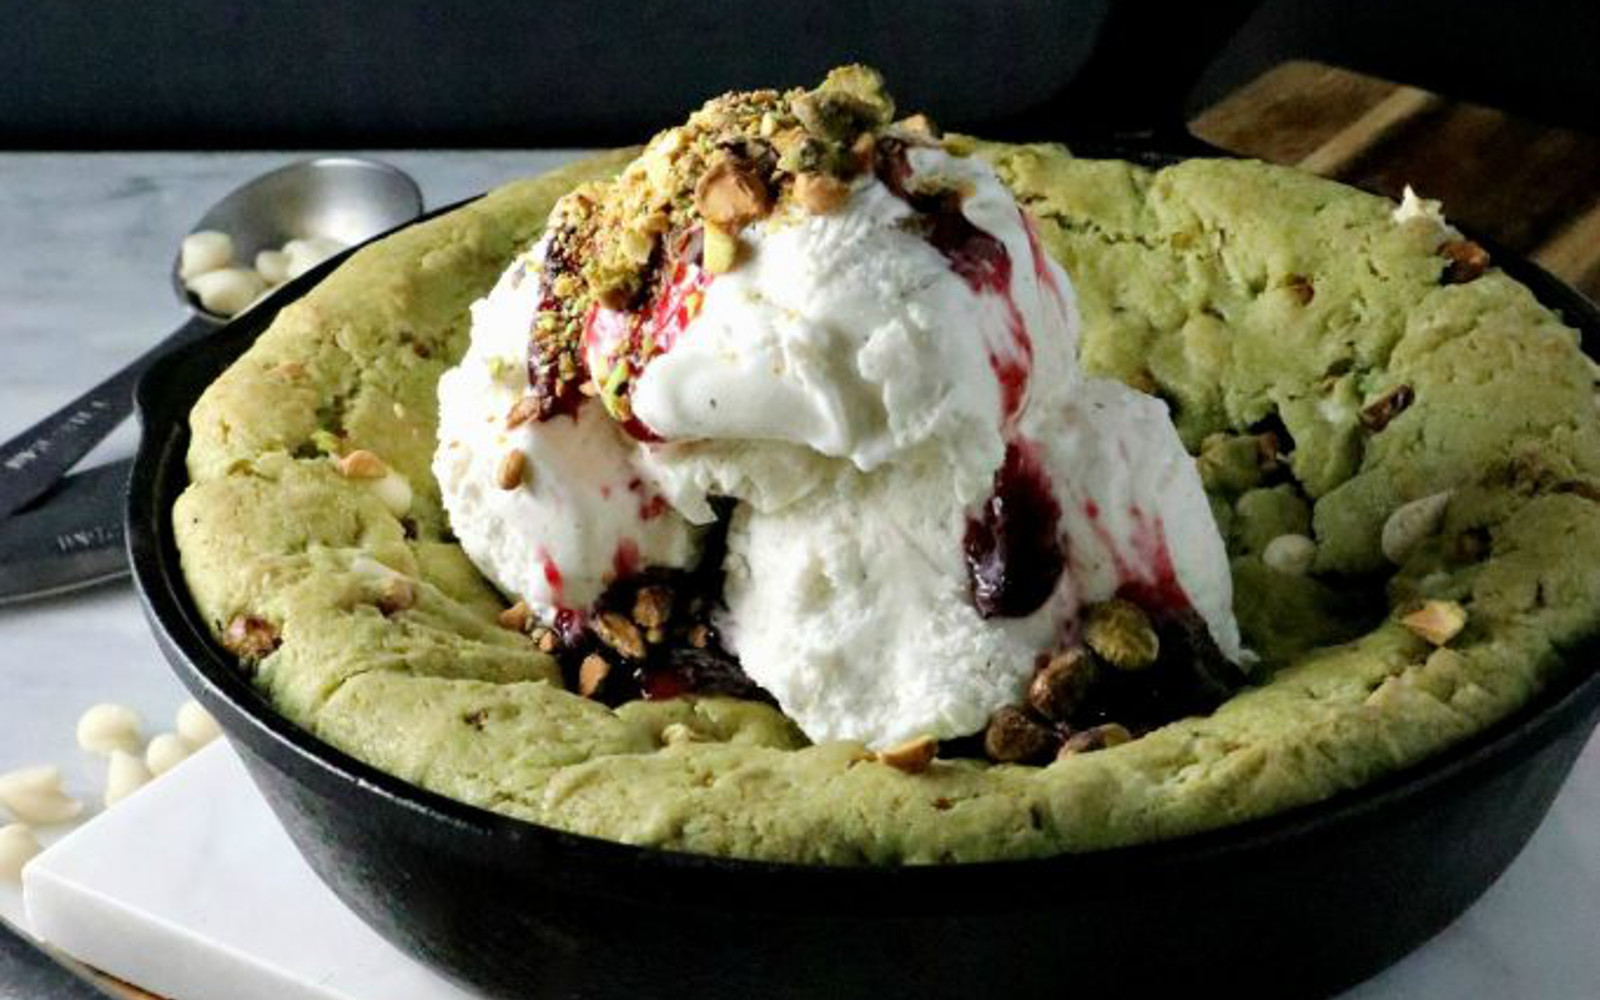 Vegan White Chocolate Pistachio Skillet Cookie